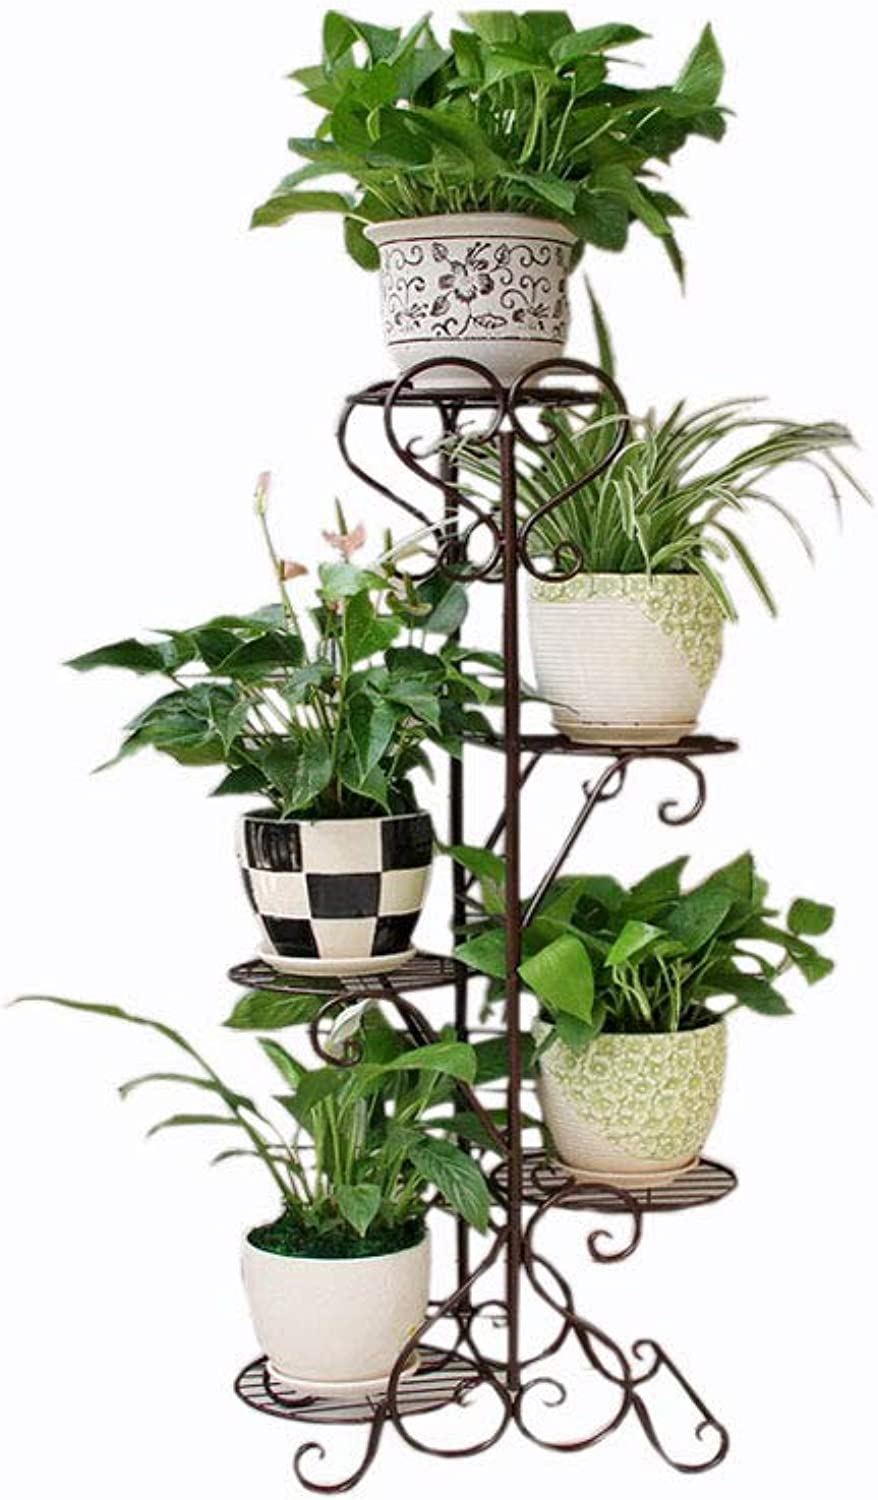 WYNZYHJ Plant Stand, Multi-Storey Indoor Special Balcony Wrought Iron Solid Wood Living Room Space Basin Floor Flower Stand (color   Brown)